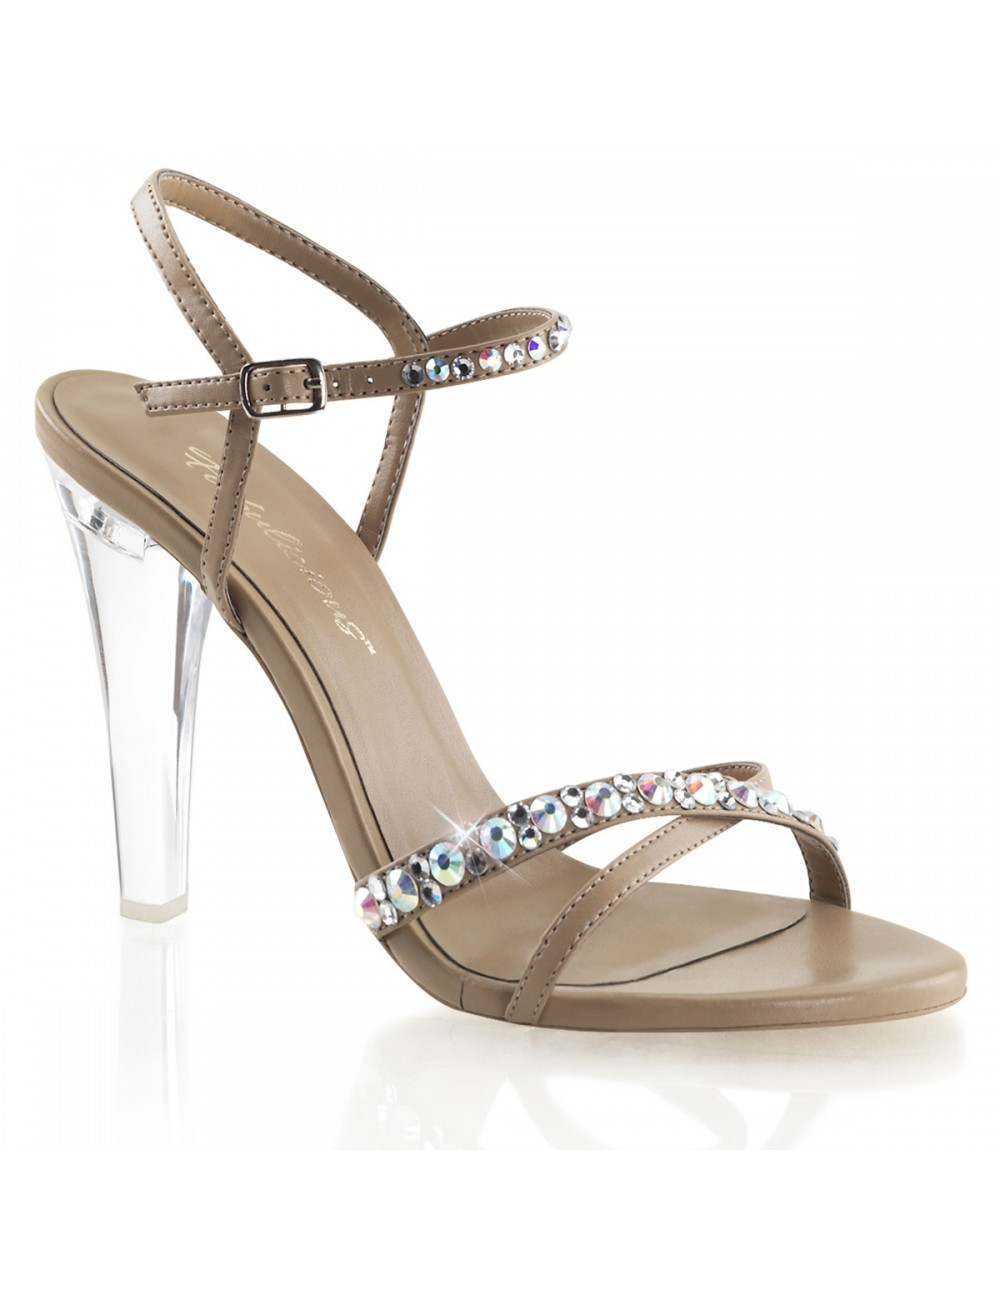 Sandales strass Clearly Beige PLEASER